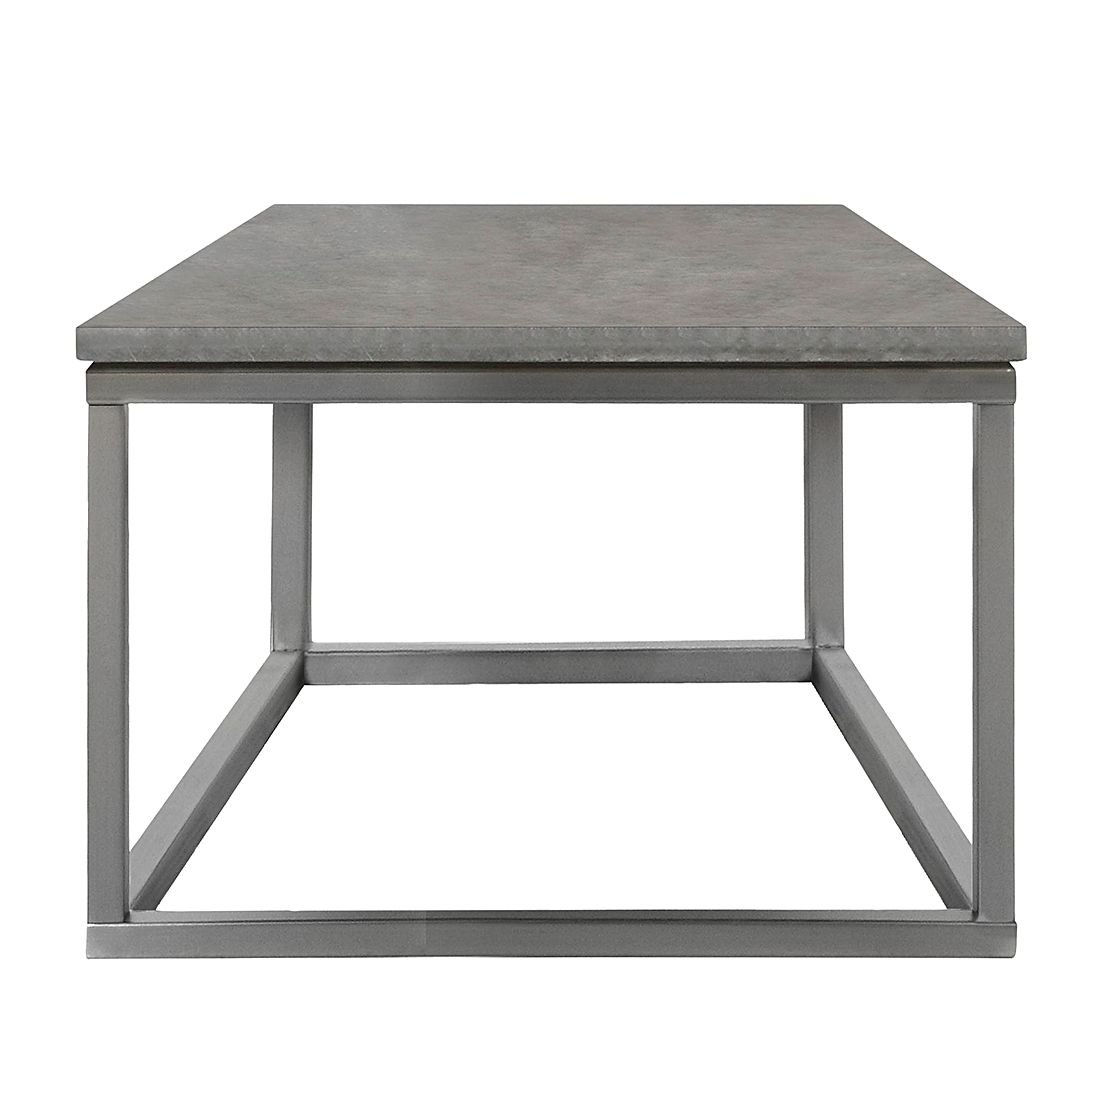 Table d'appoint Branda - Marbre / Nickel brossé, ars manufacti